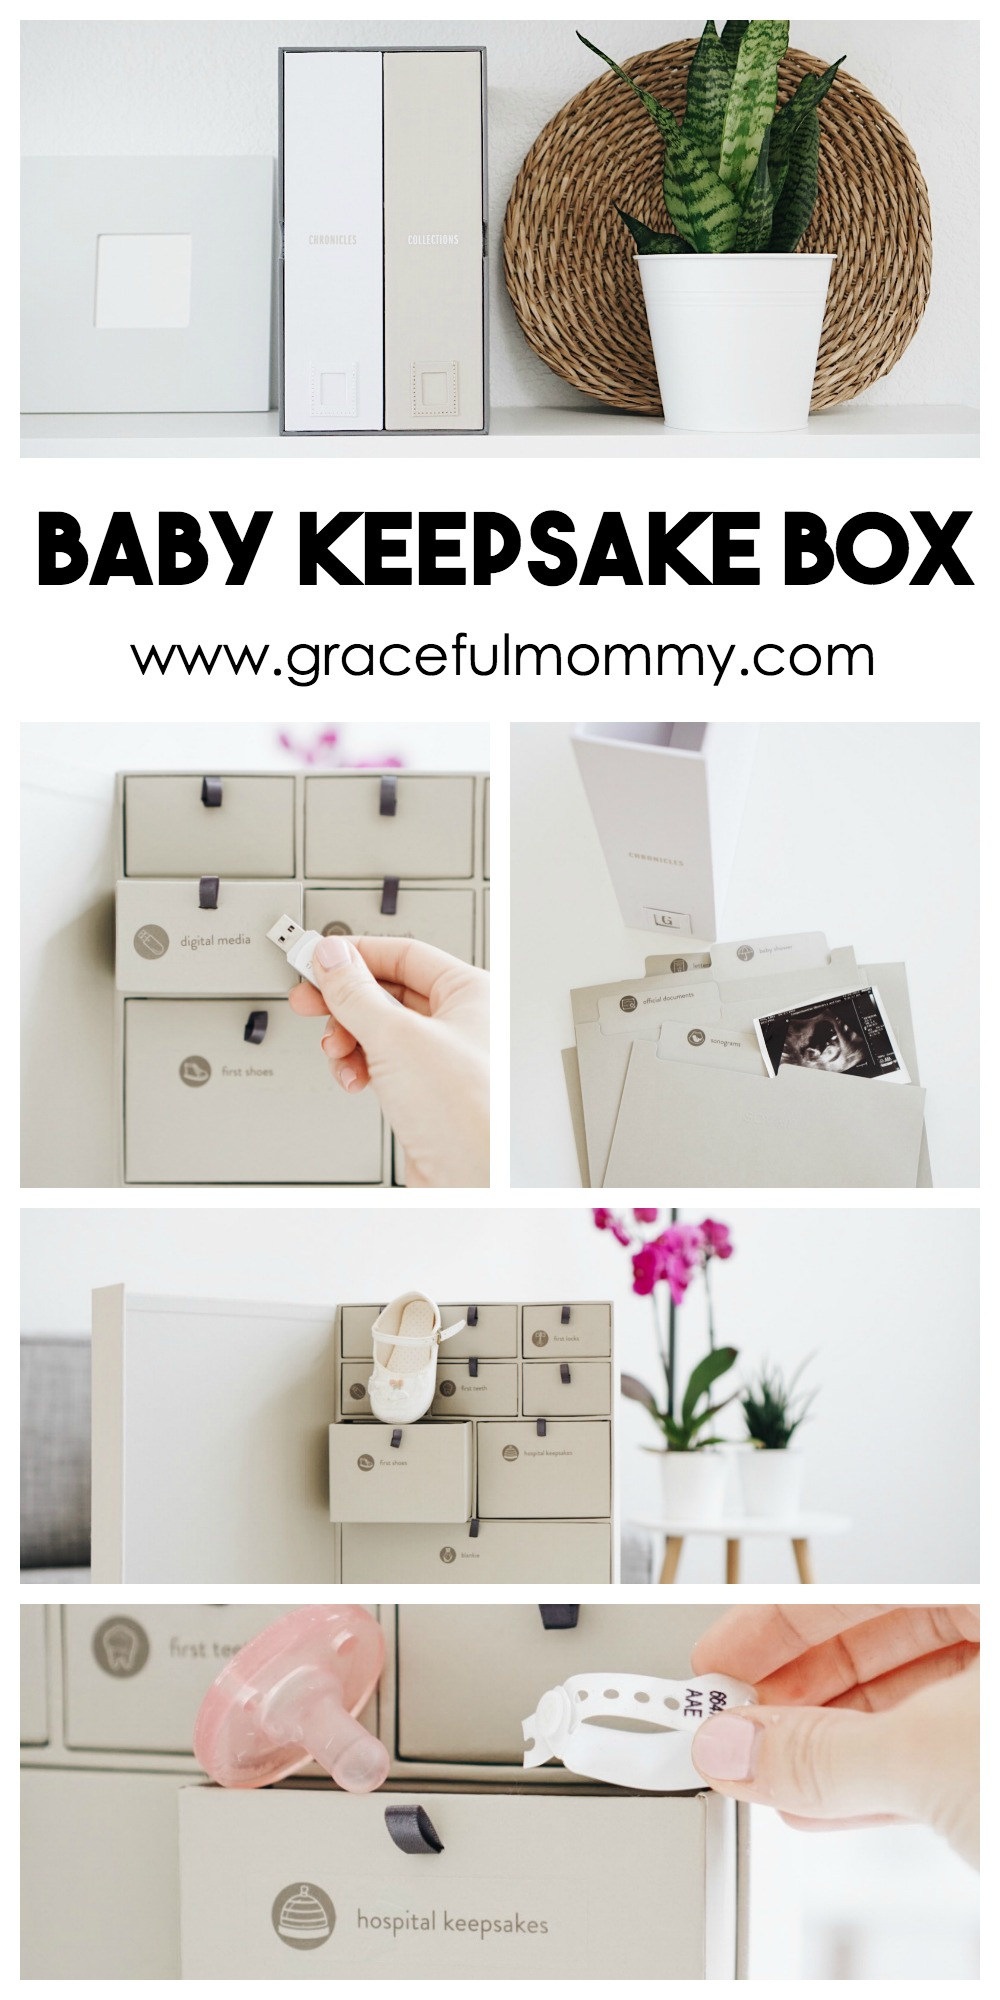 Amazing Keepsake Box from Savor. Perfect for storing all of baby's most important keepsakes + memories! read more on gracefulmommy.com